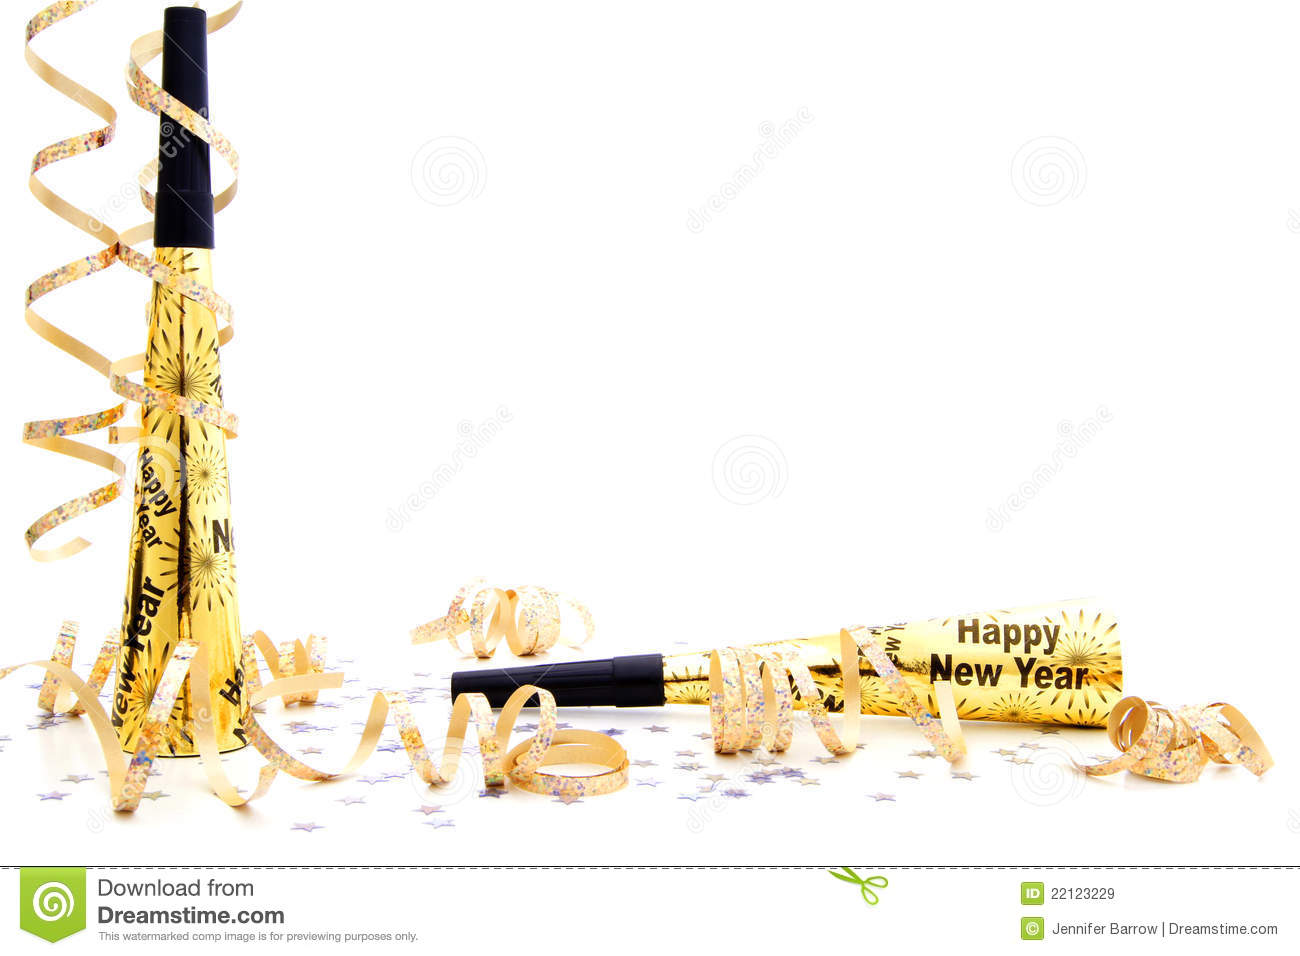 New Years Eve Party Noisemaker Border Stock Image Image Of Border